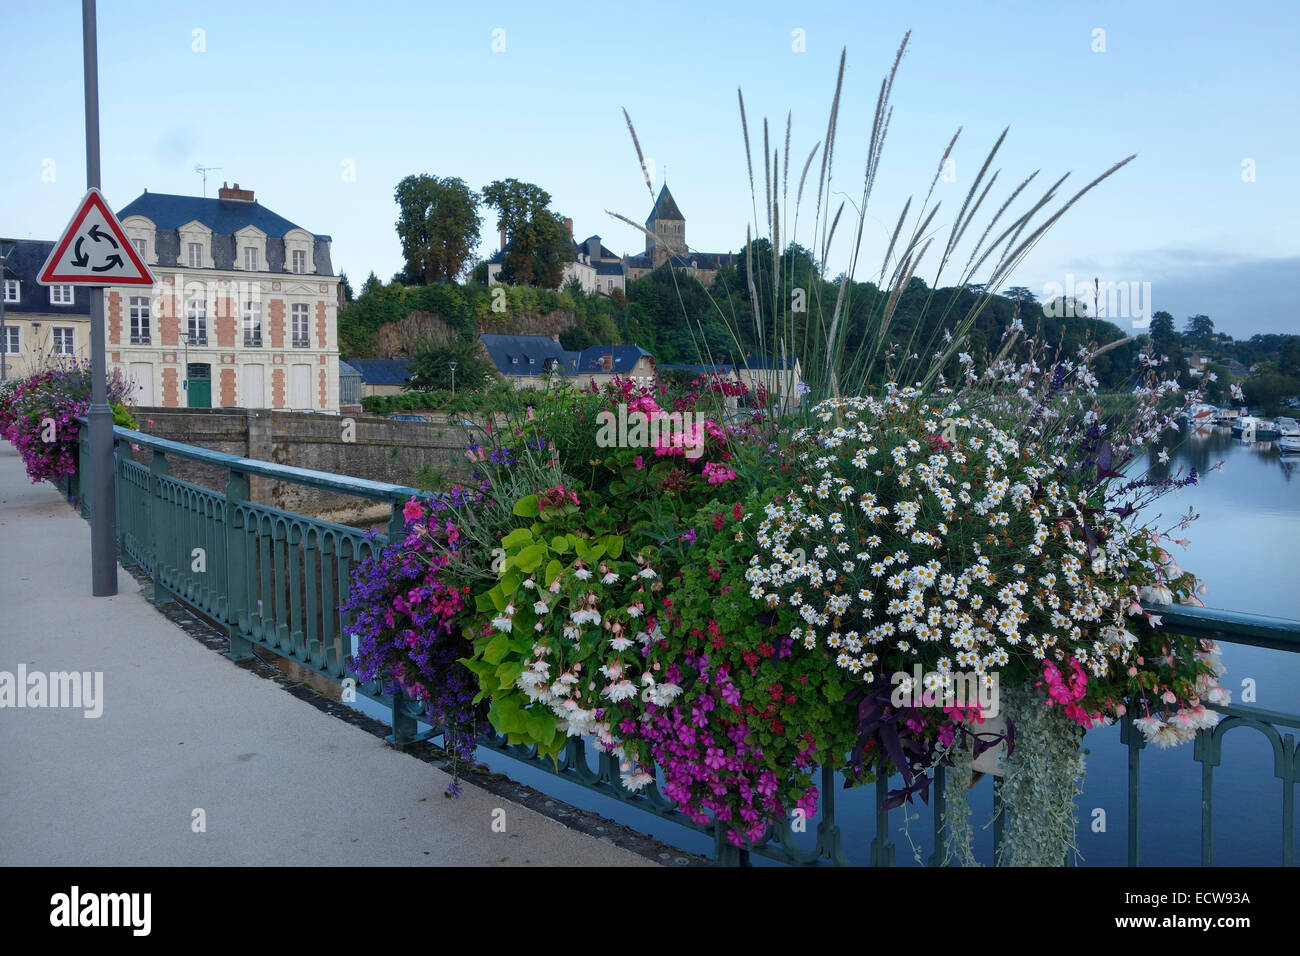 Amenity bedding display in planters on a bridge over the Mayenne in Chateau Gontier, France Stock Photo